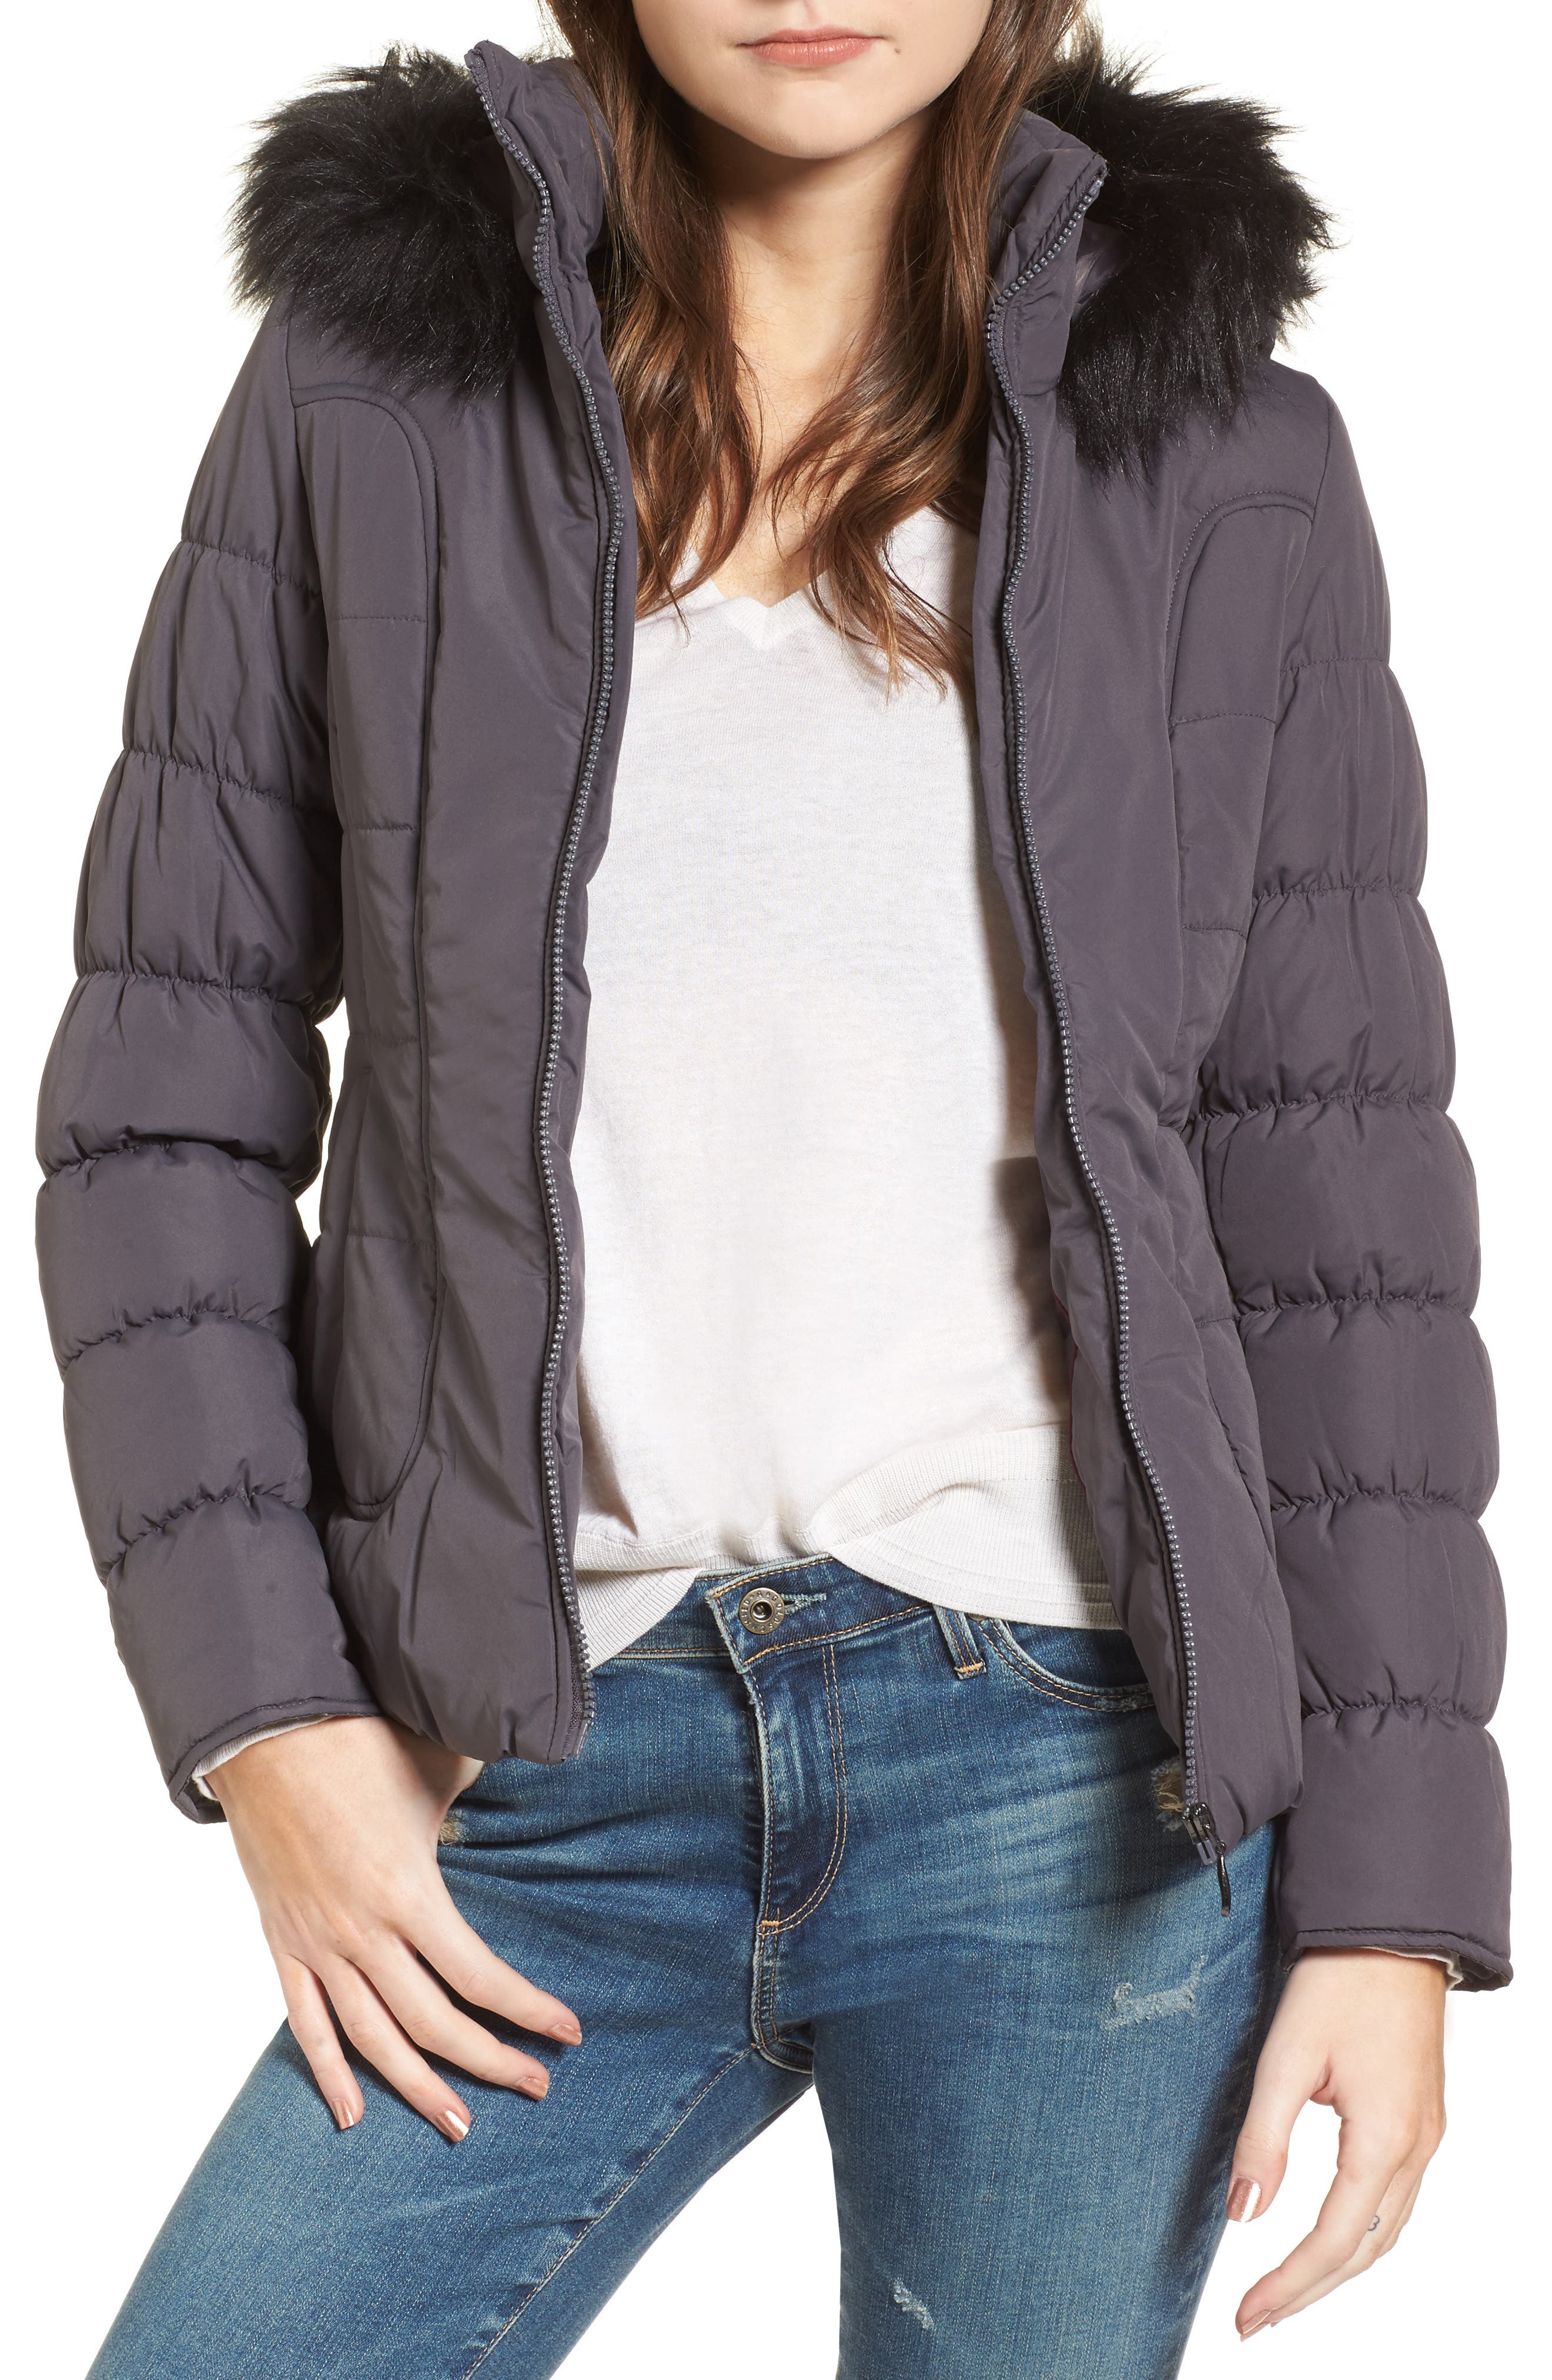 Main Image - Maralyn & Me Quilted Jacket with Faux Fur Collar